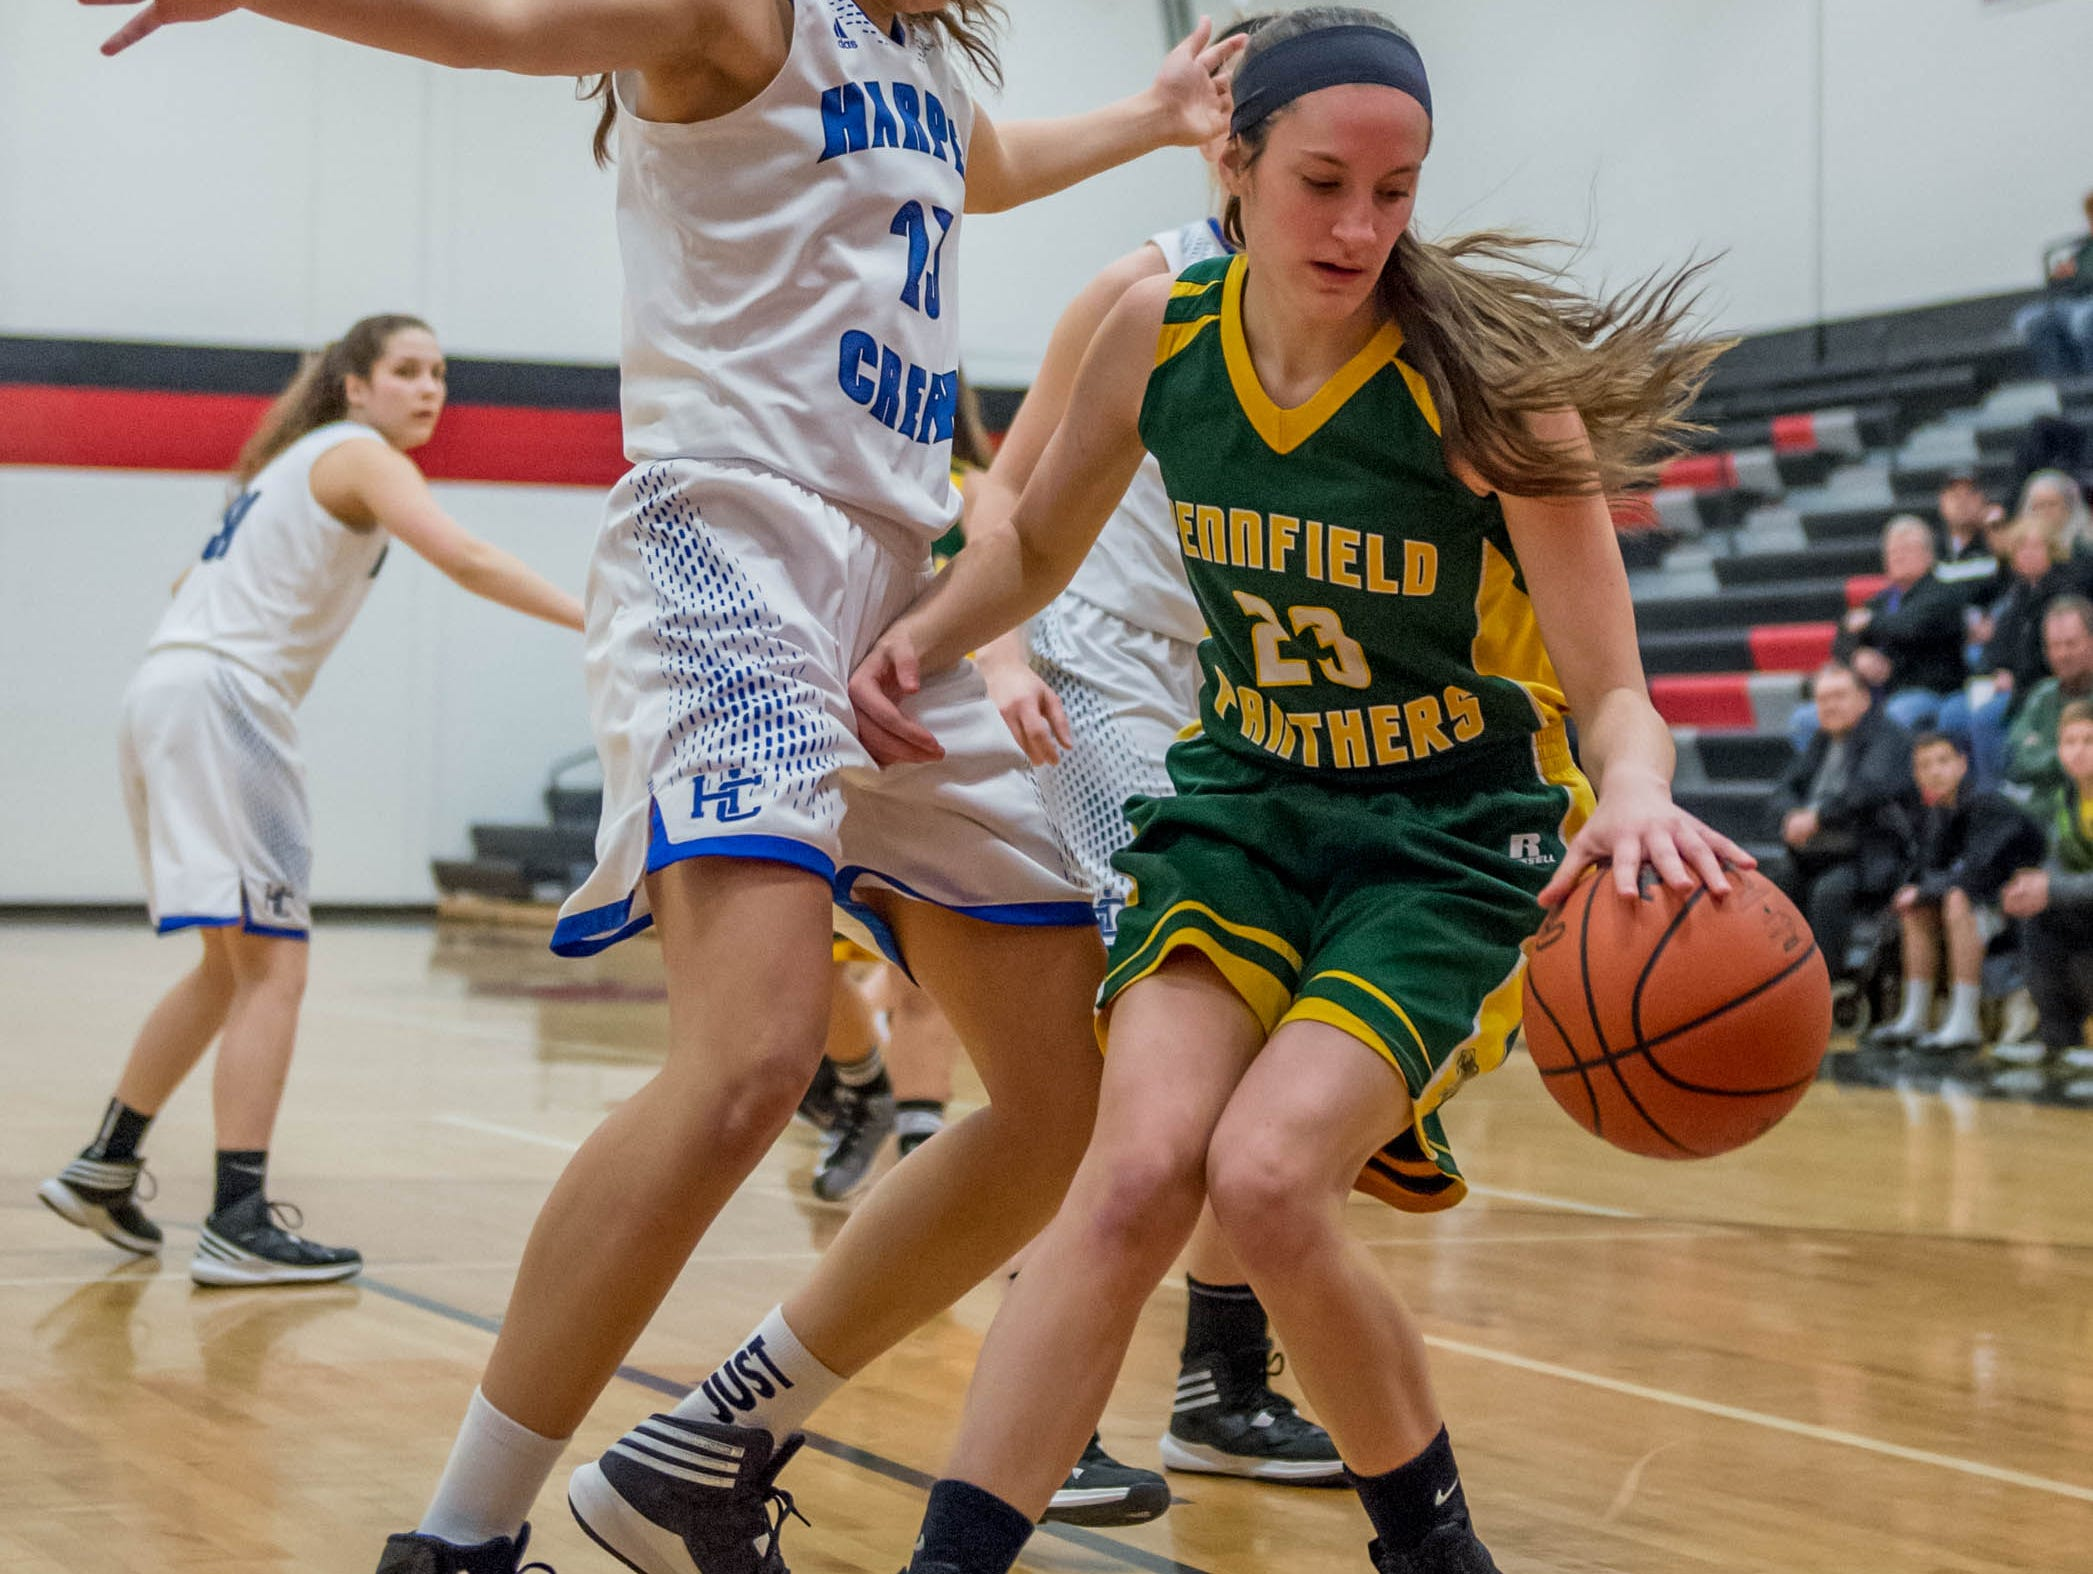 Harper Creek's Charley Andrews (23) guards Pennfield's Brianna Abercrombie (23) in first round of districts game at Marshall Monday evening.